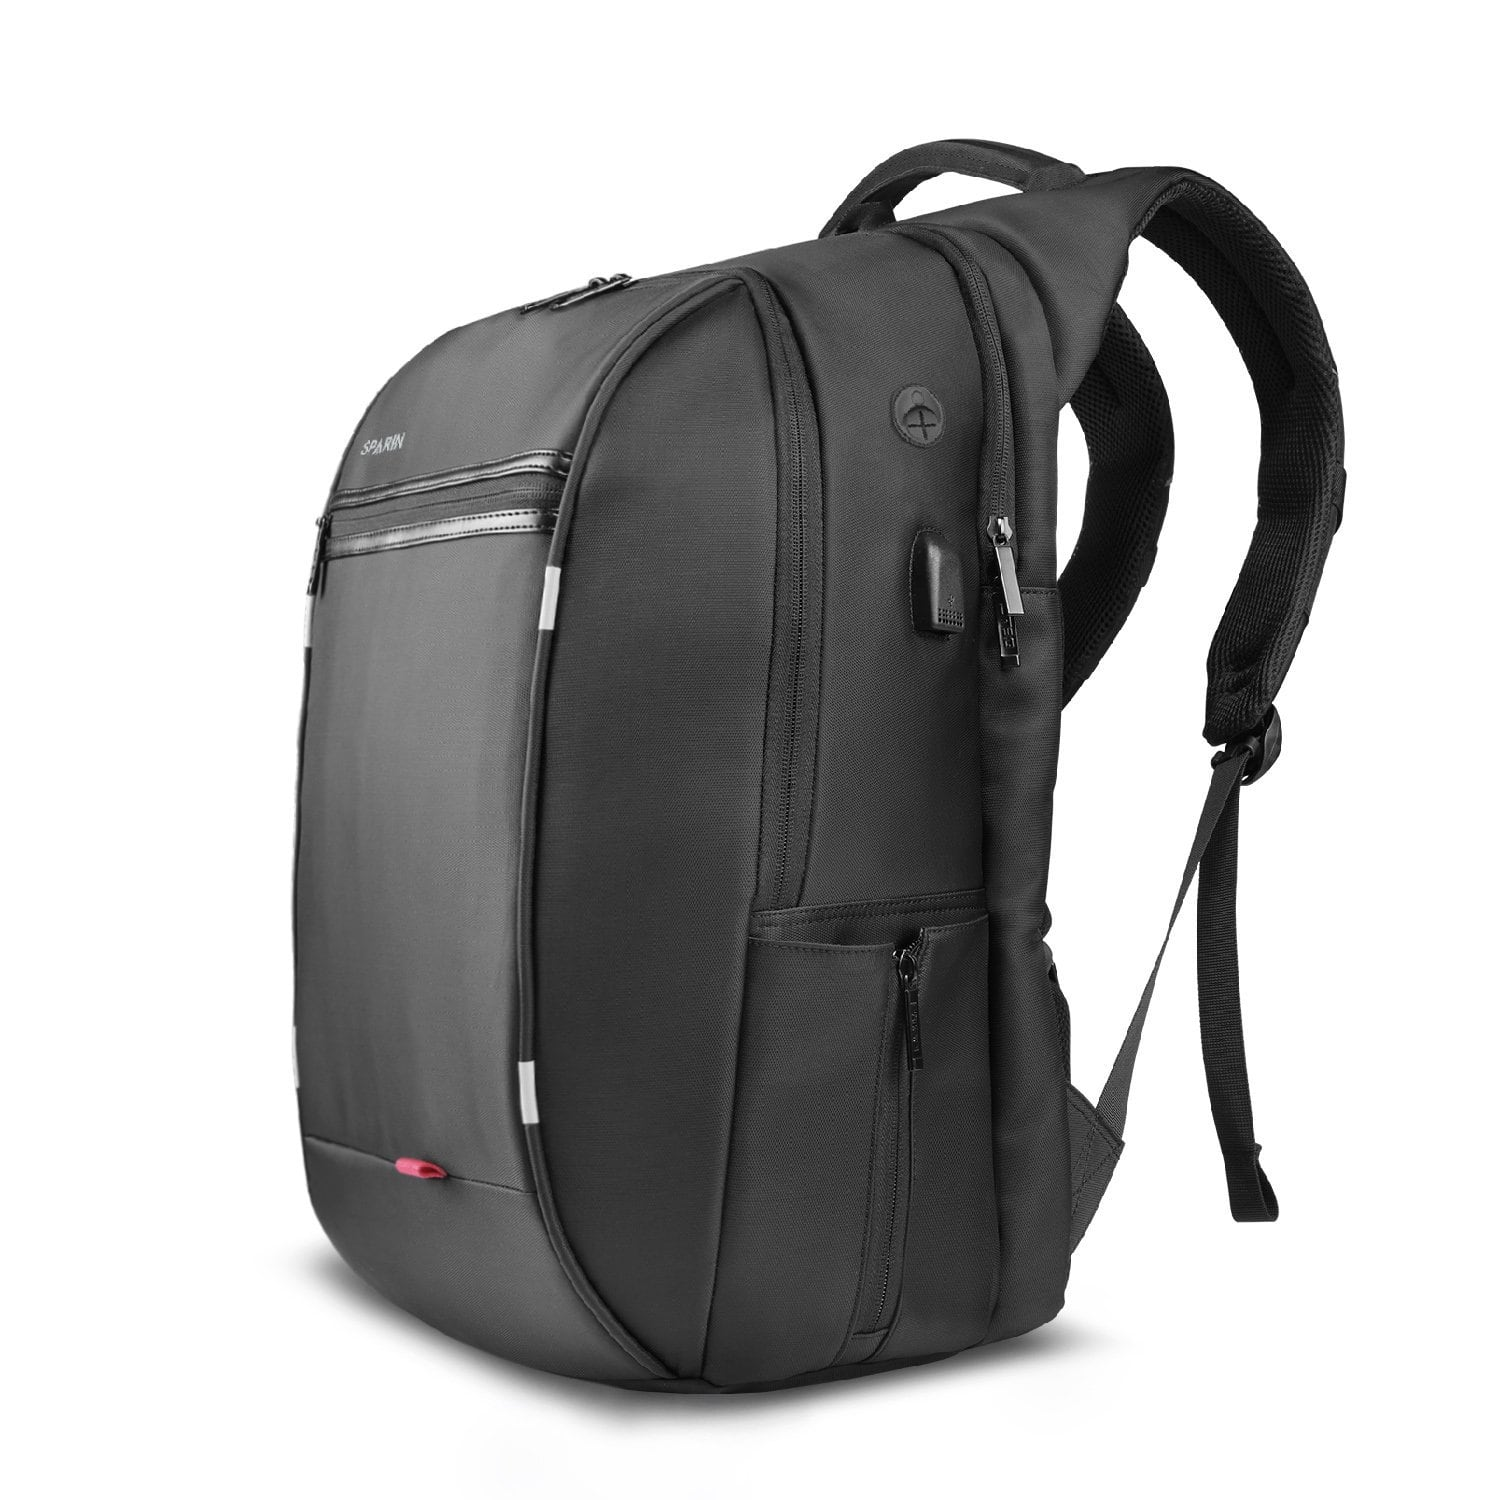 Laptop Backpack, For Up to 17.3-Inch Laptops w/ USB Charging Port $17.67 @ Amazon